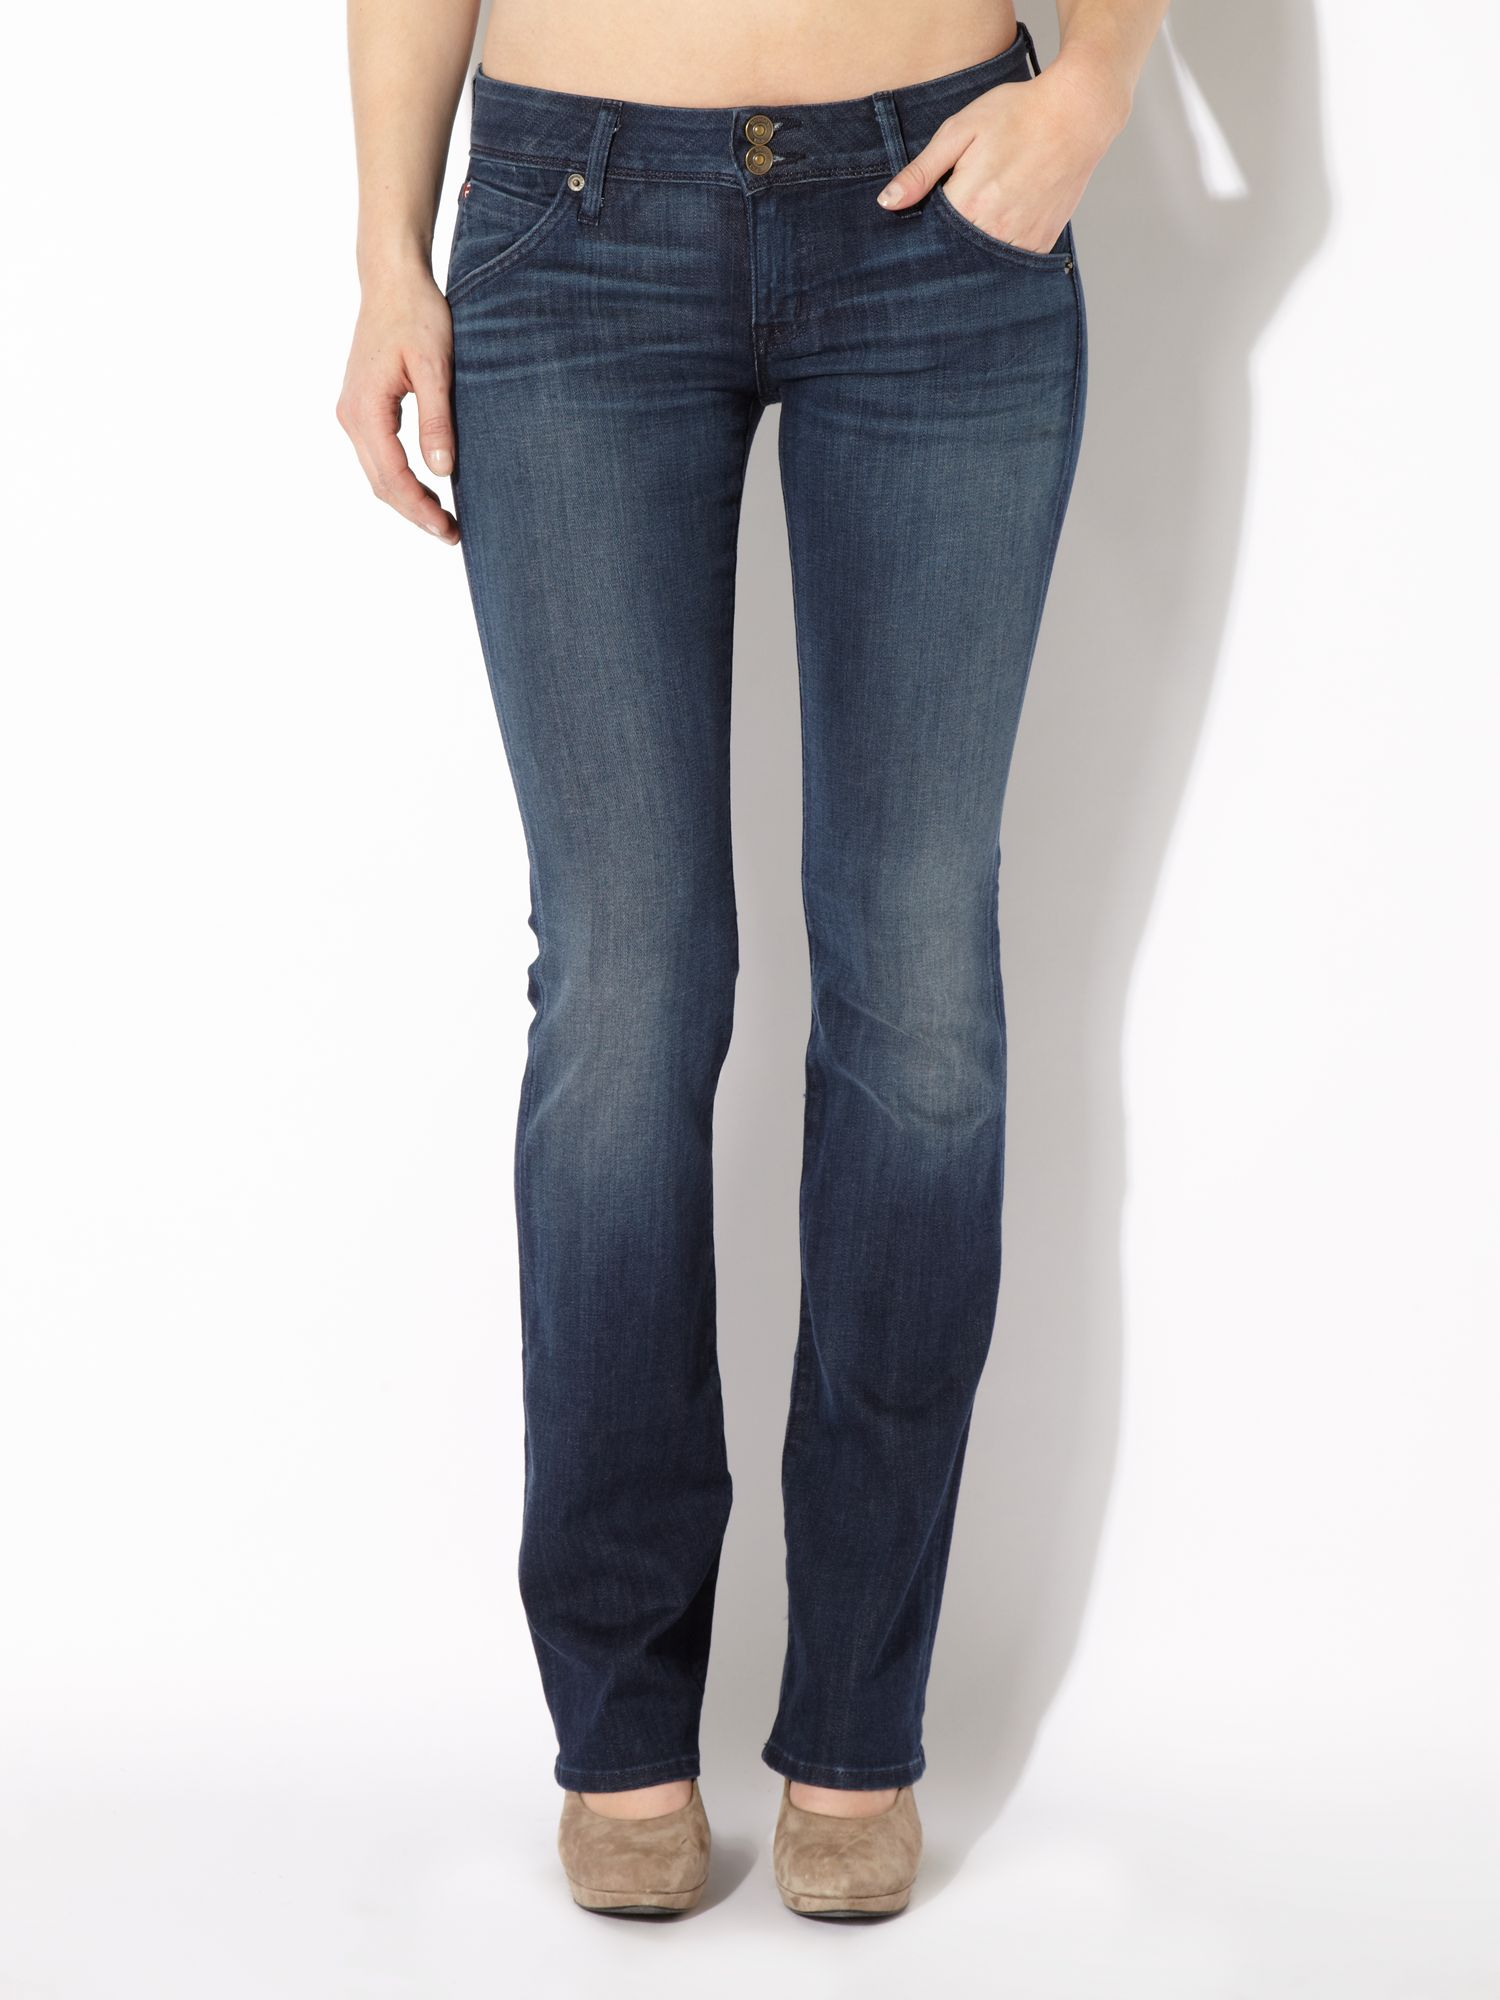 Beth baby boot jeans in Siouxie